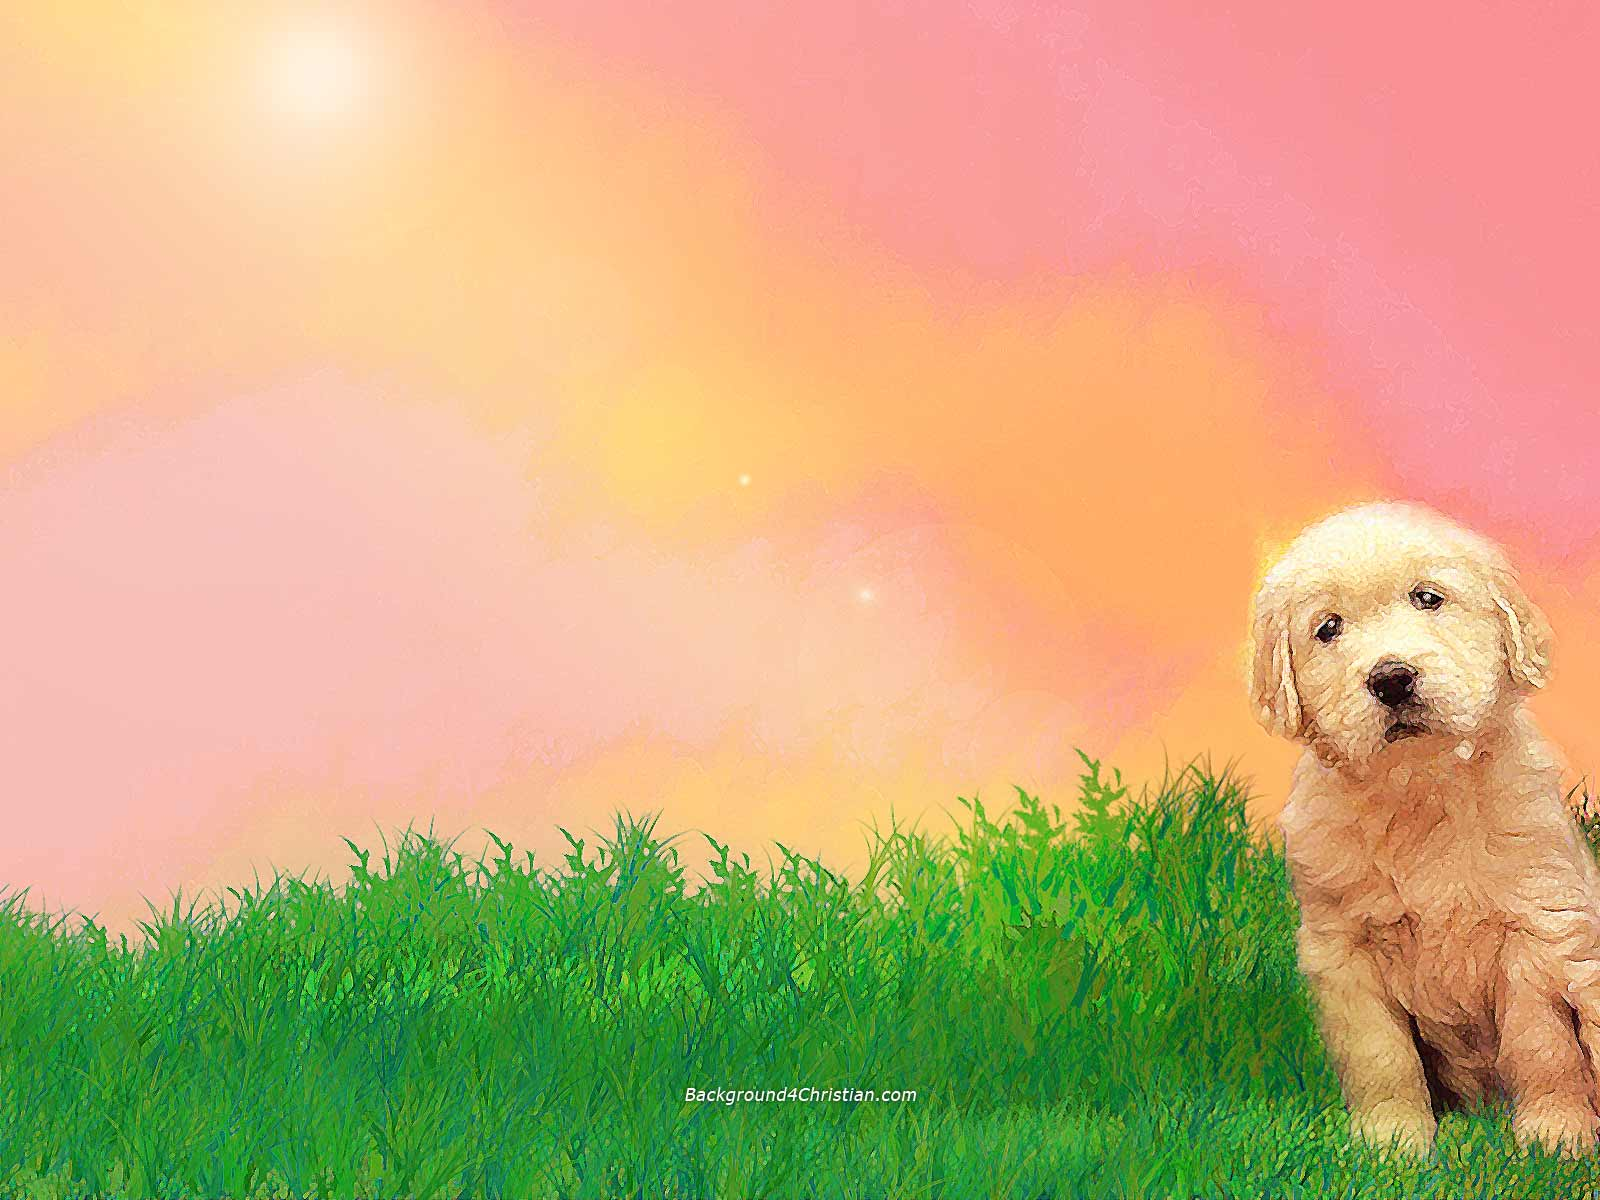 Cute Powerpoint Background Designs | Top Pictures Gallery